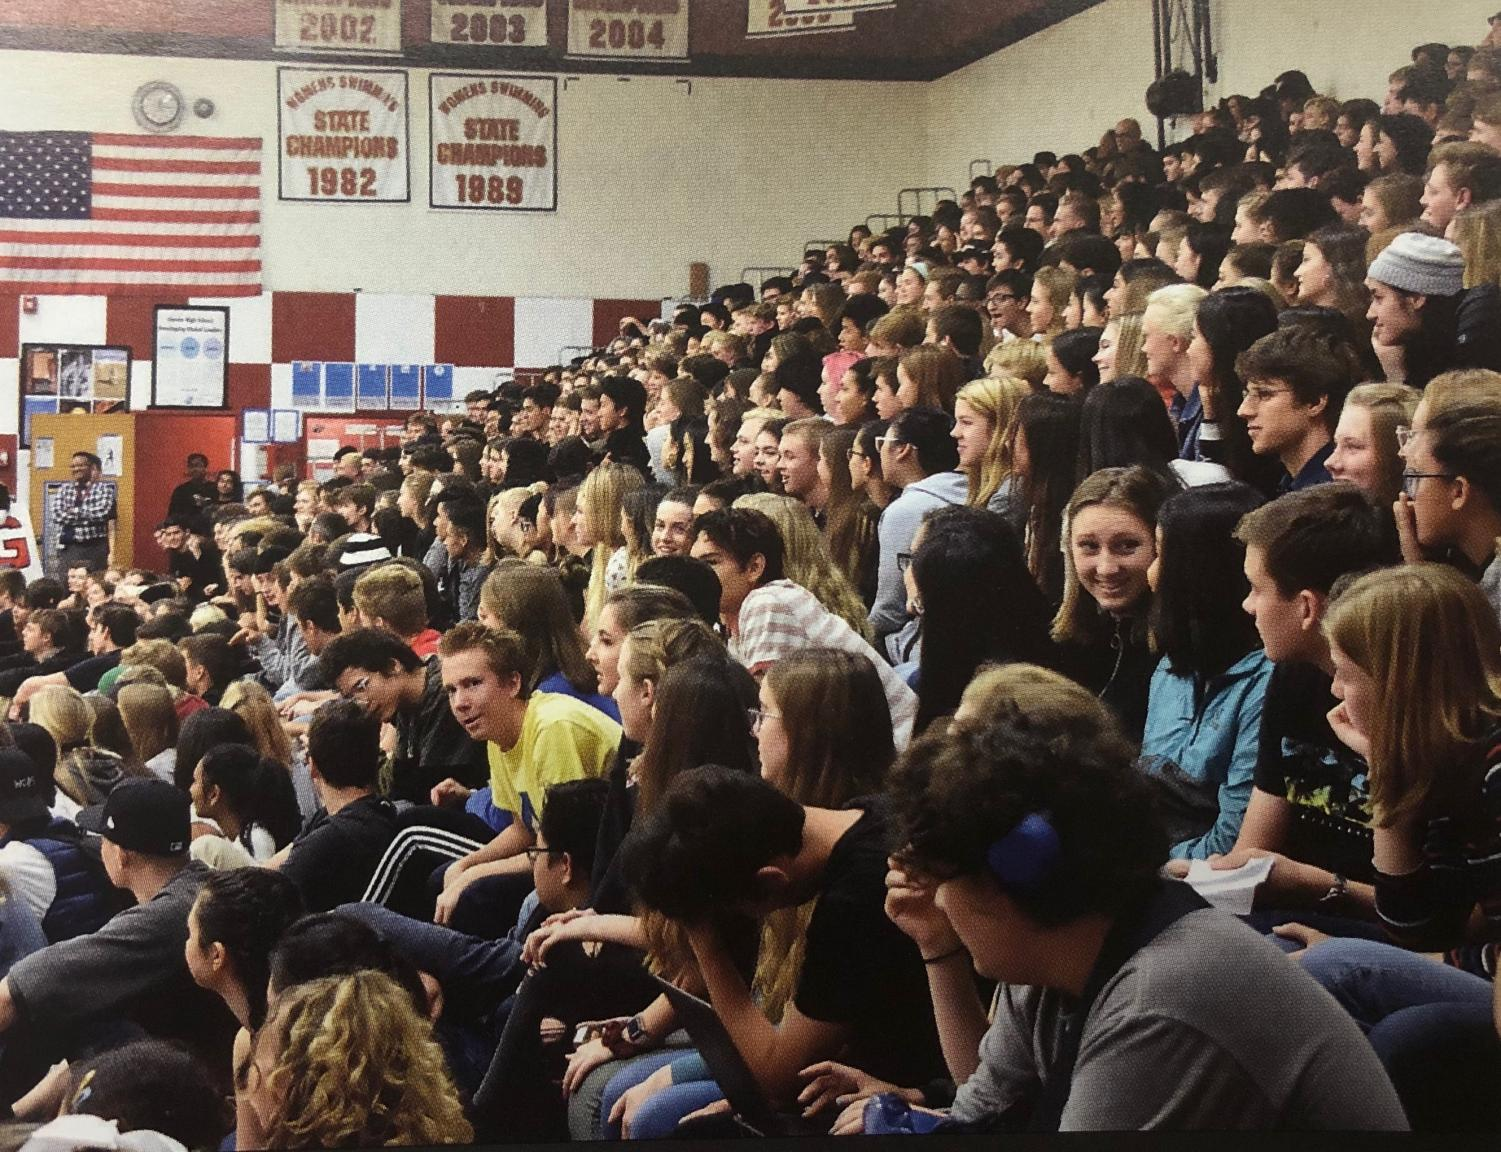 Students watch Hoopfest during the 2018-19 school year. Photo courtesy of the Lincoln Yearbook team.